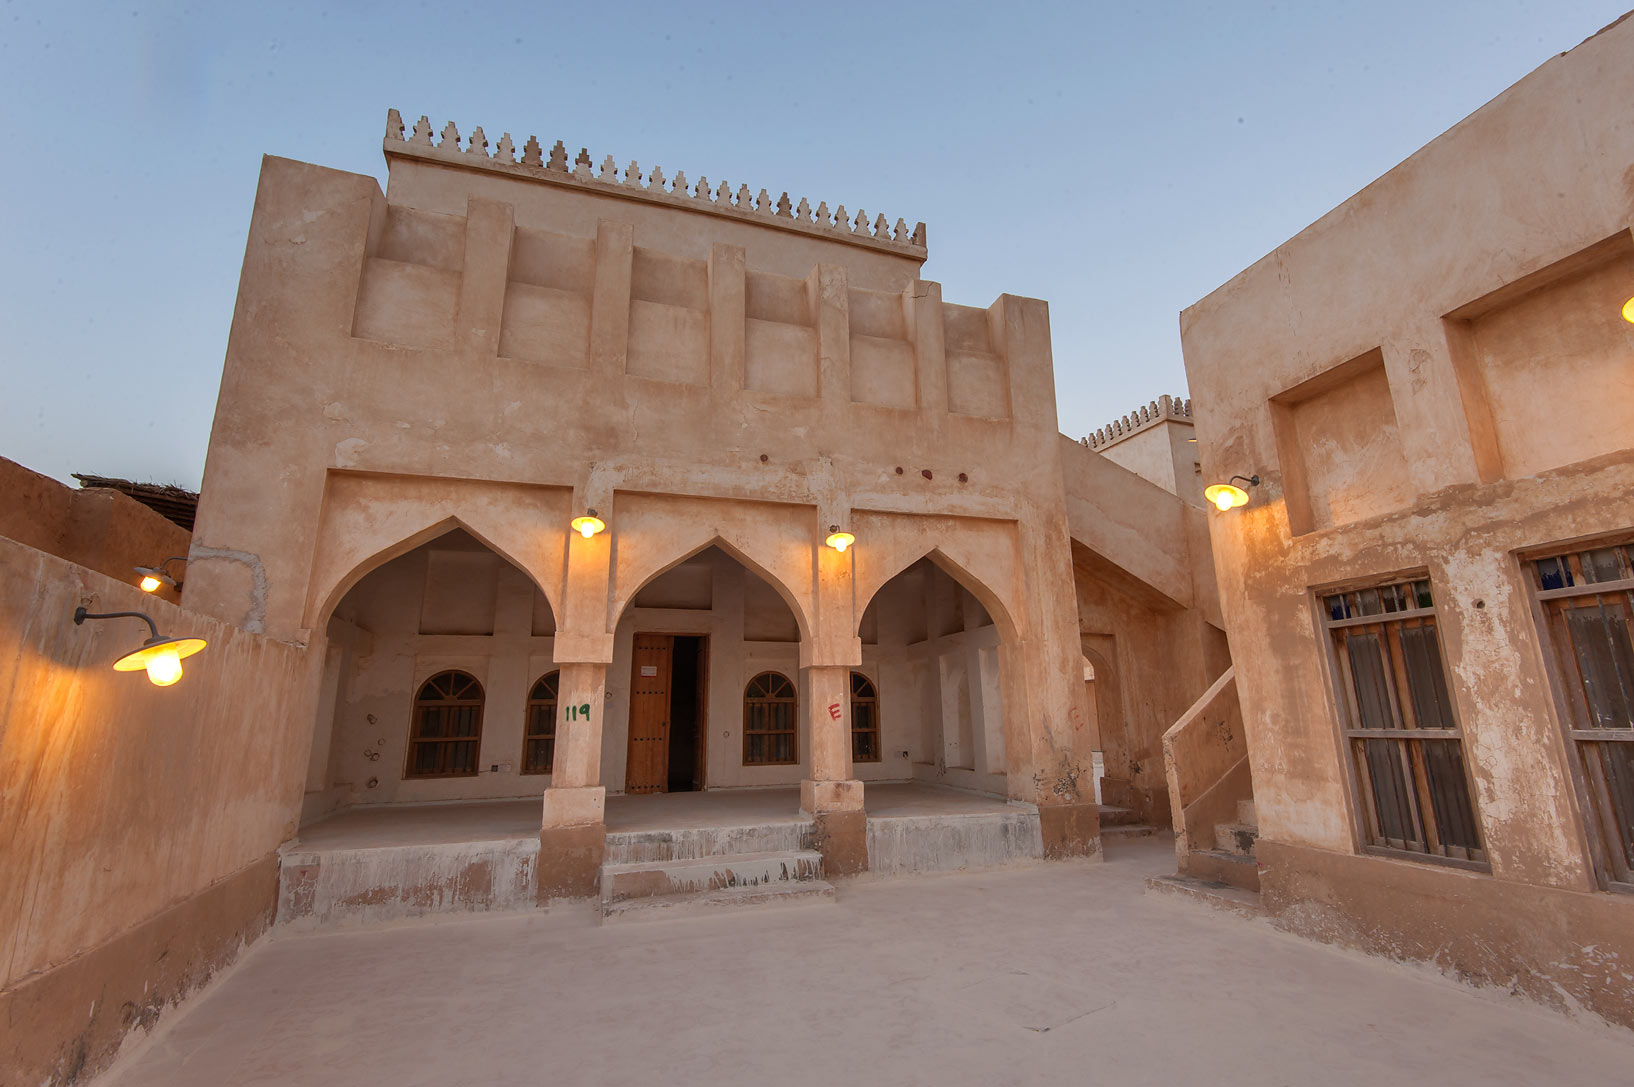 Arched gallery in Al Wakra Heritage Village (Souq Waqif in Al Wakrah). Qatar